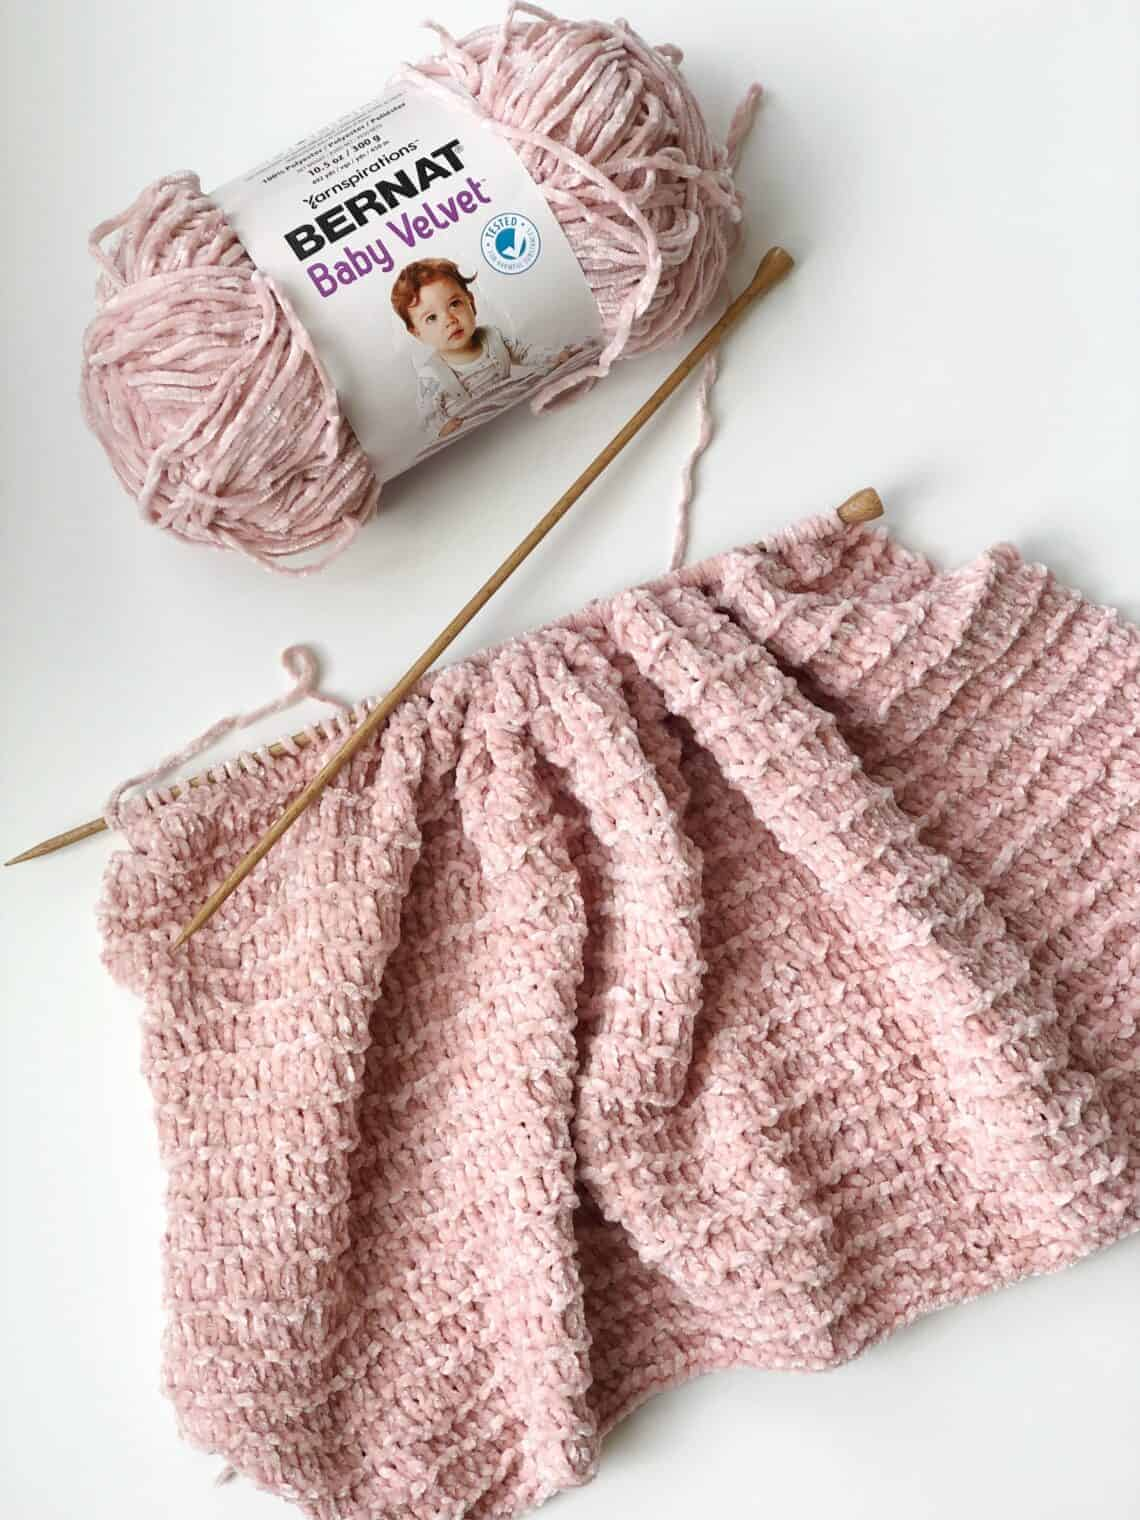 Knitting with velvet yarn. How to knit with velvet yarn